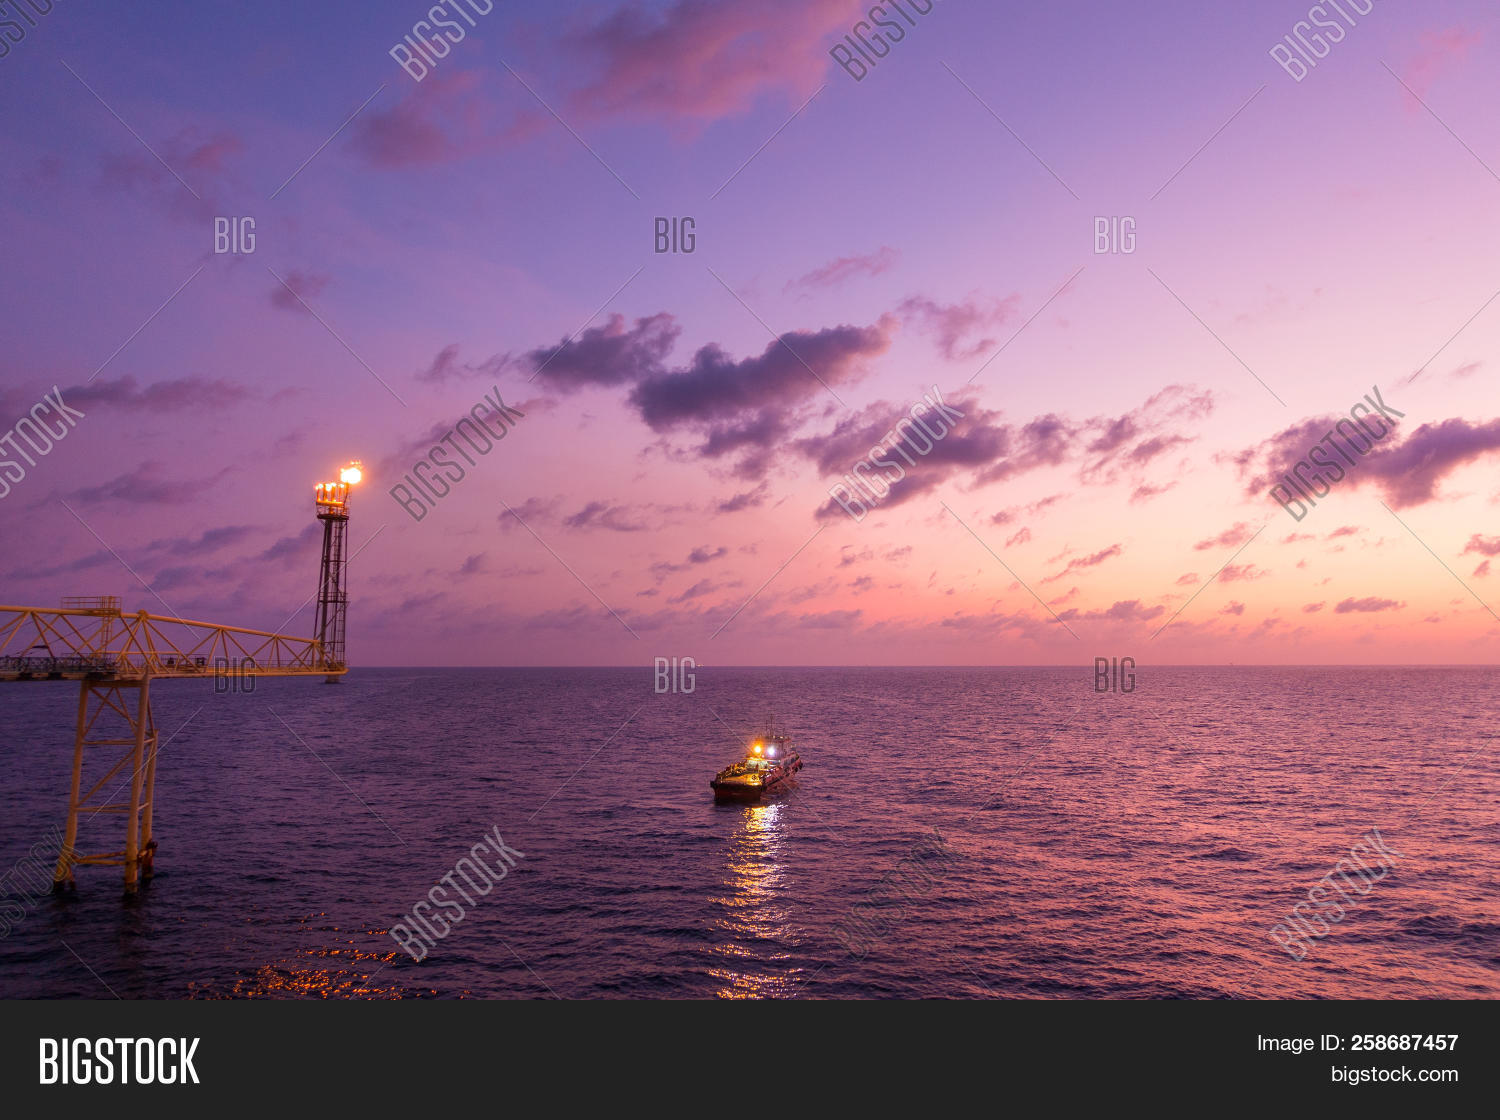 Flare Stack Flare Image & Photo (Free Trial) | Bigstock